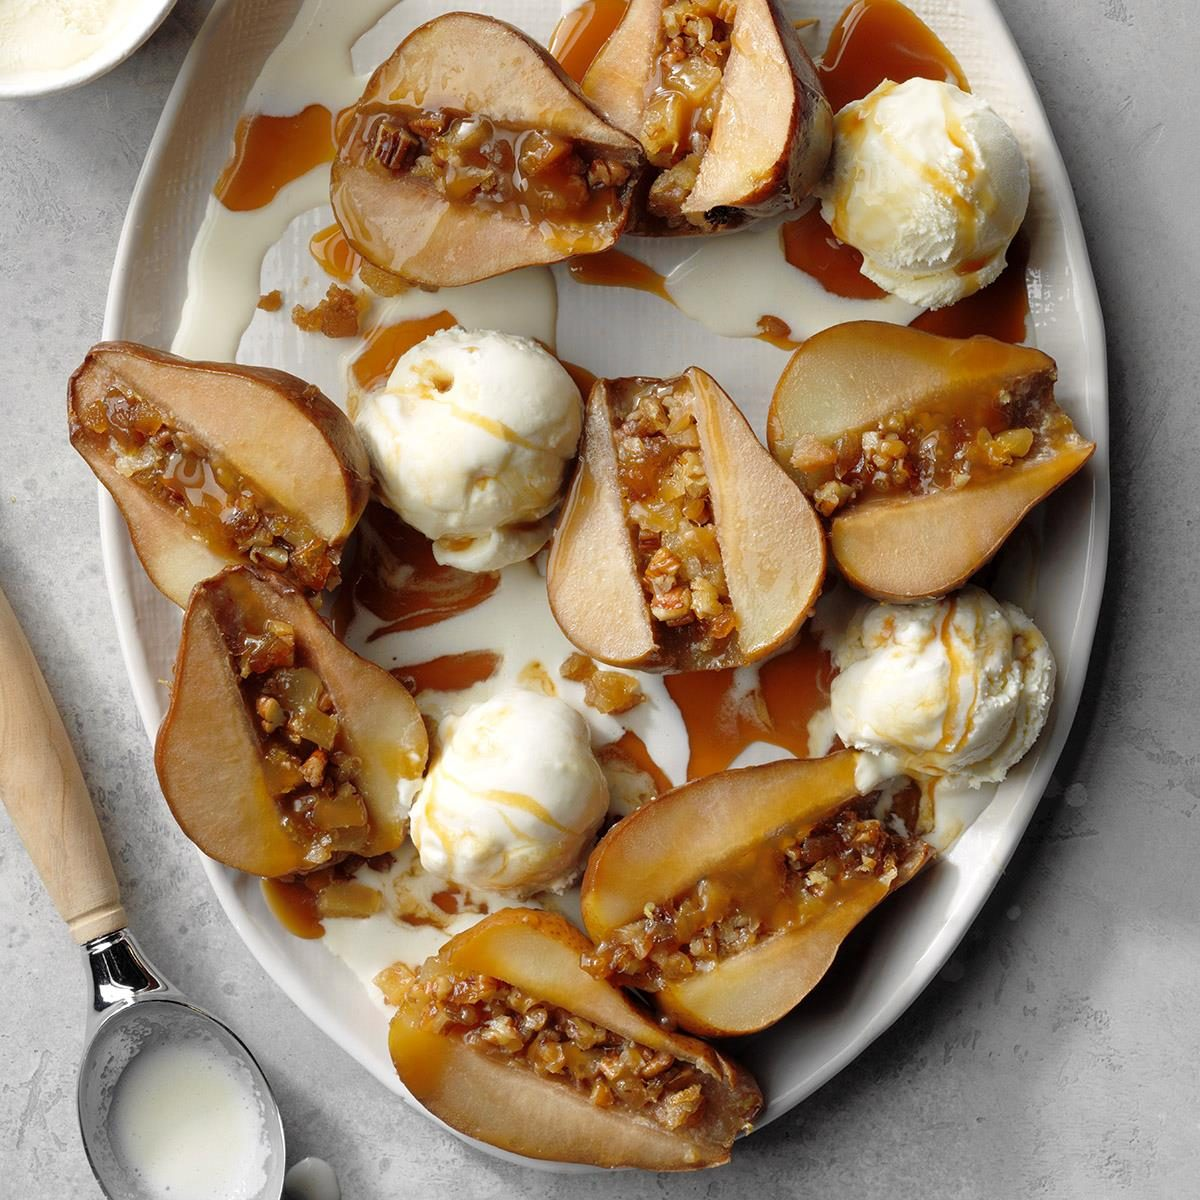 Day 20: Slow-Cooked Gingered Pears